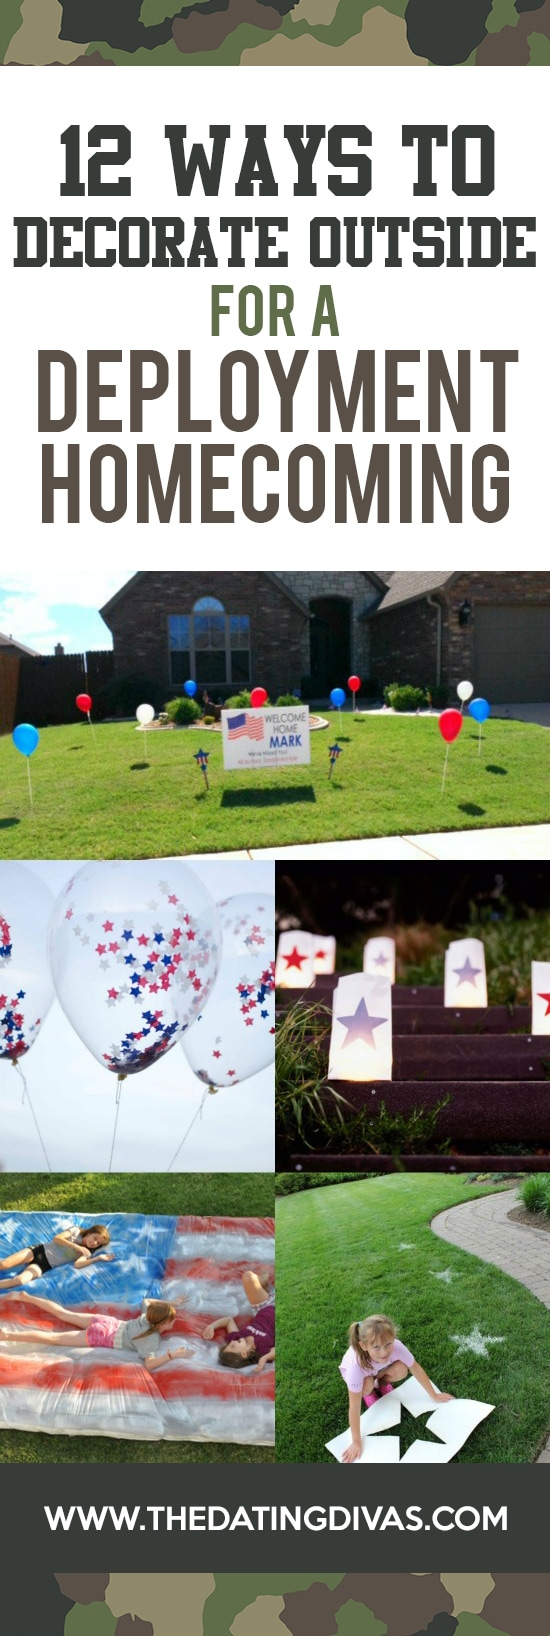 Decorate for Military Homecoming